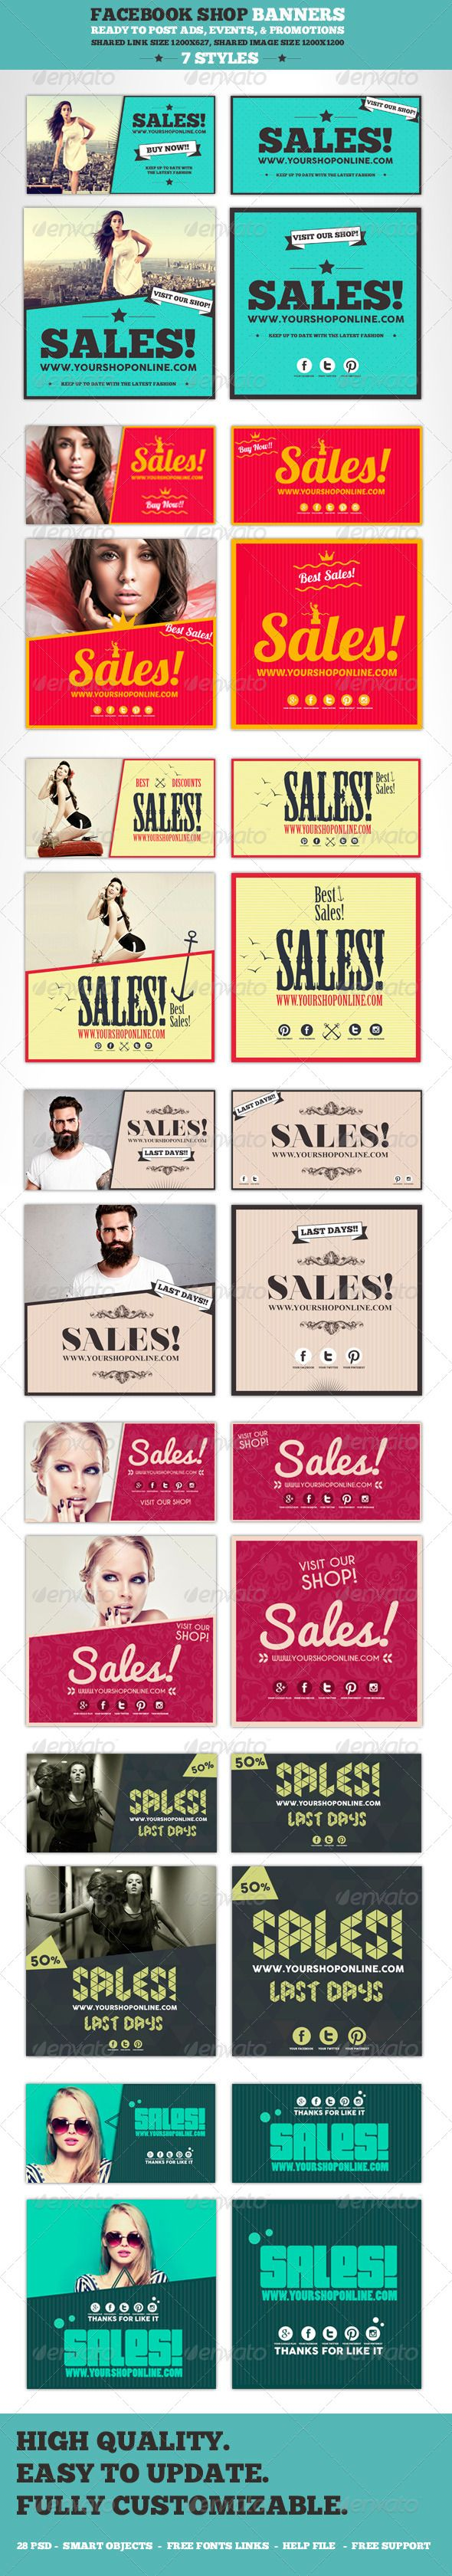 Facebook Post Banners - Banners & Ads Web Elements | Download: https://graphicriver.net/item/facebook-post-banners/8545243?ref=sinzo